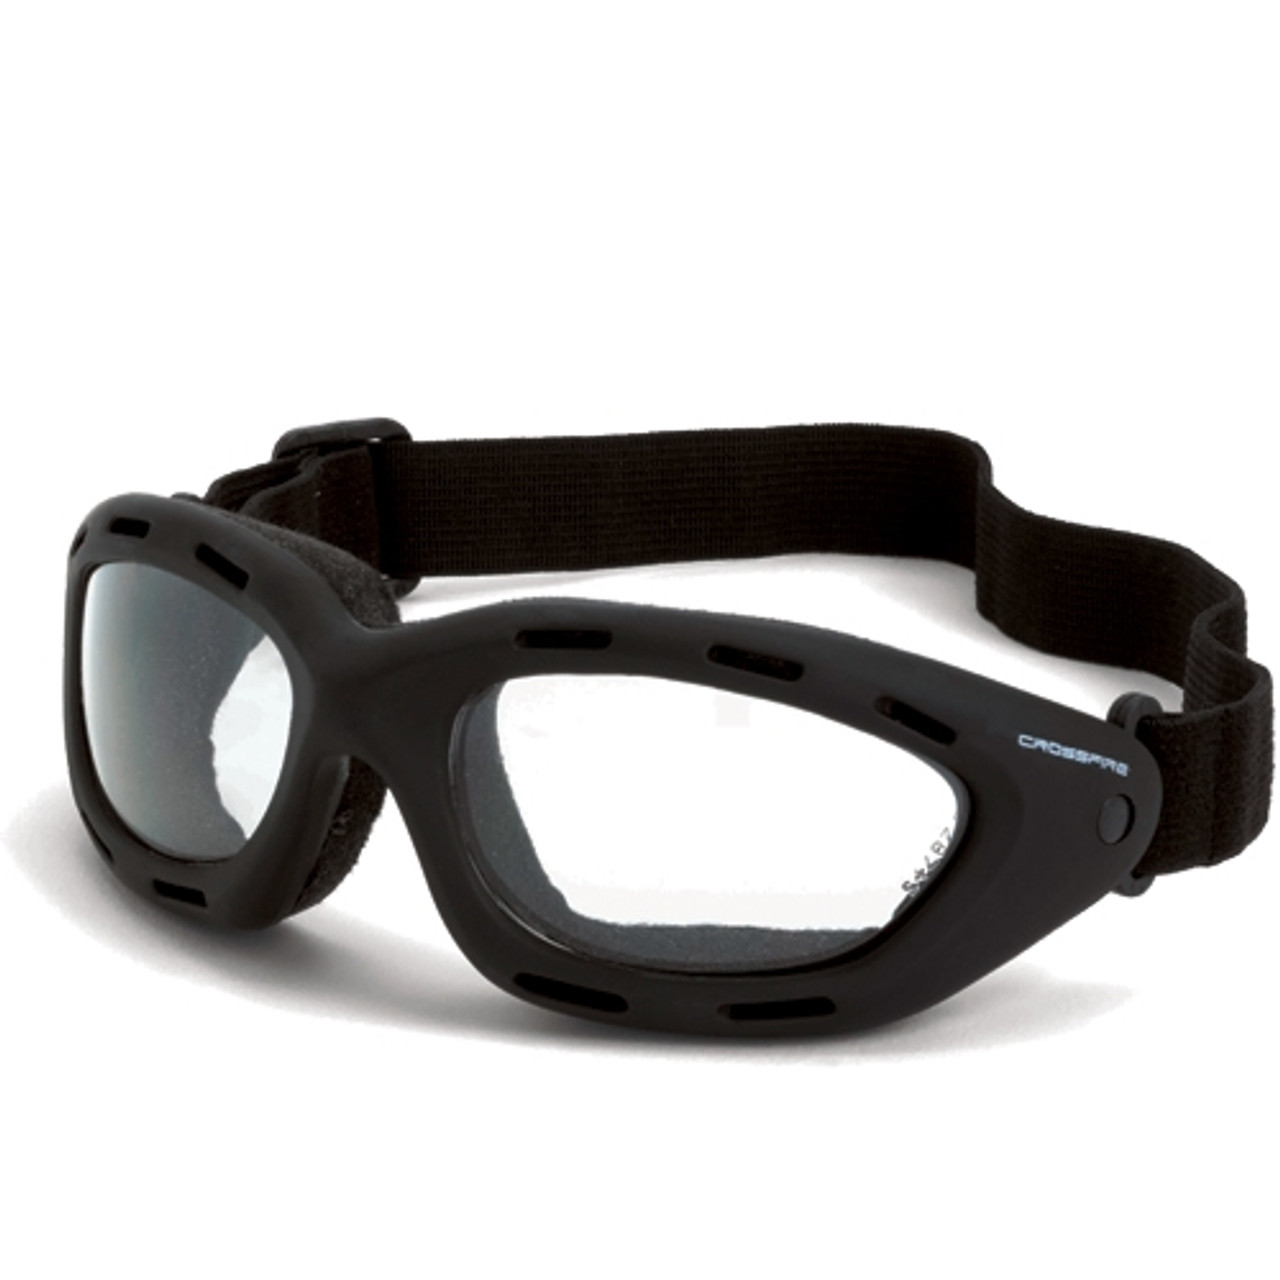 RADIANS 2724 AF Crossfire Safety Glasses With Black Frame And Clear Anti-Fog